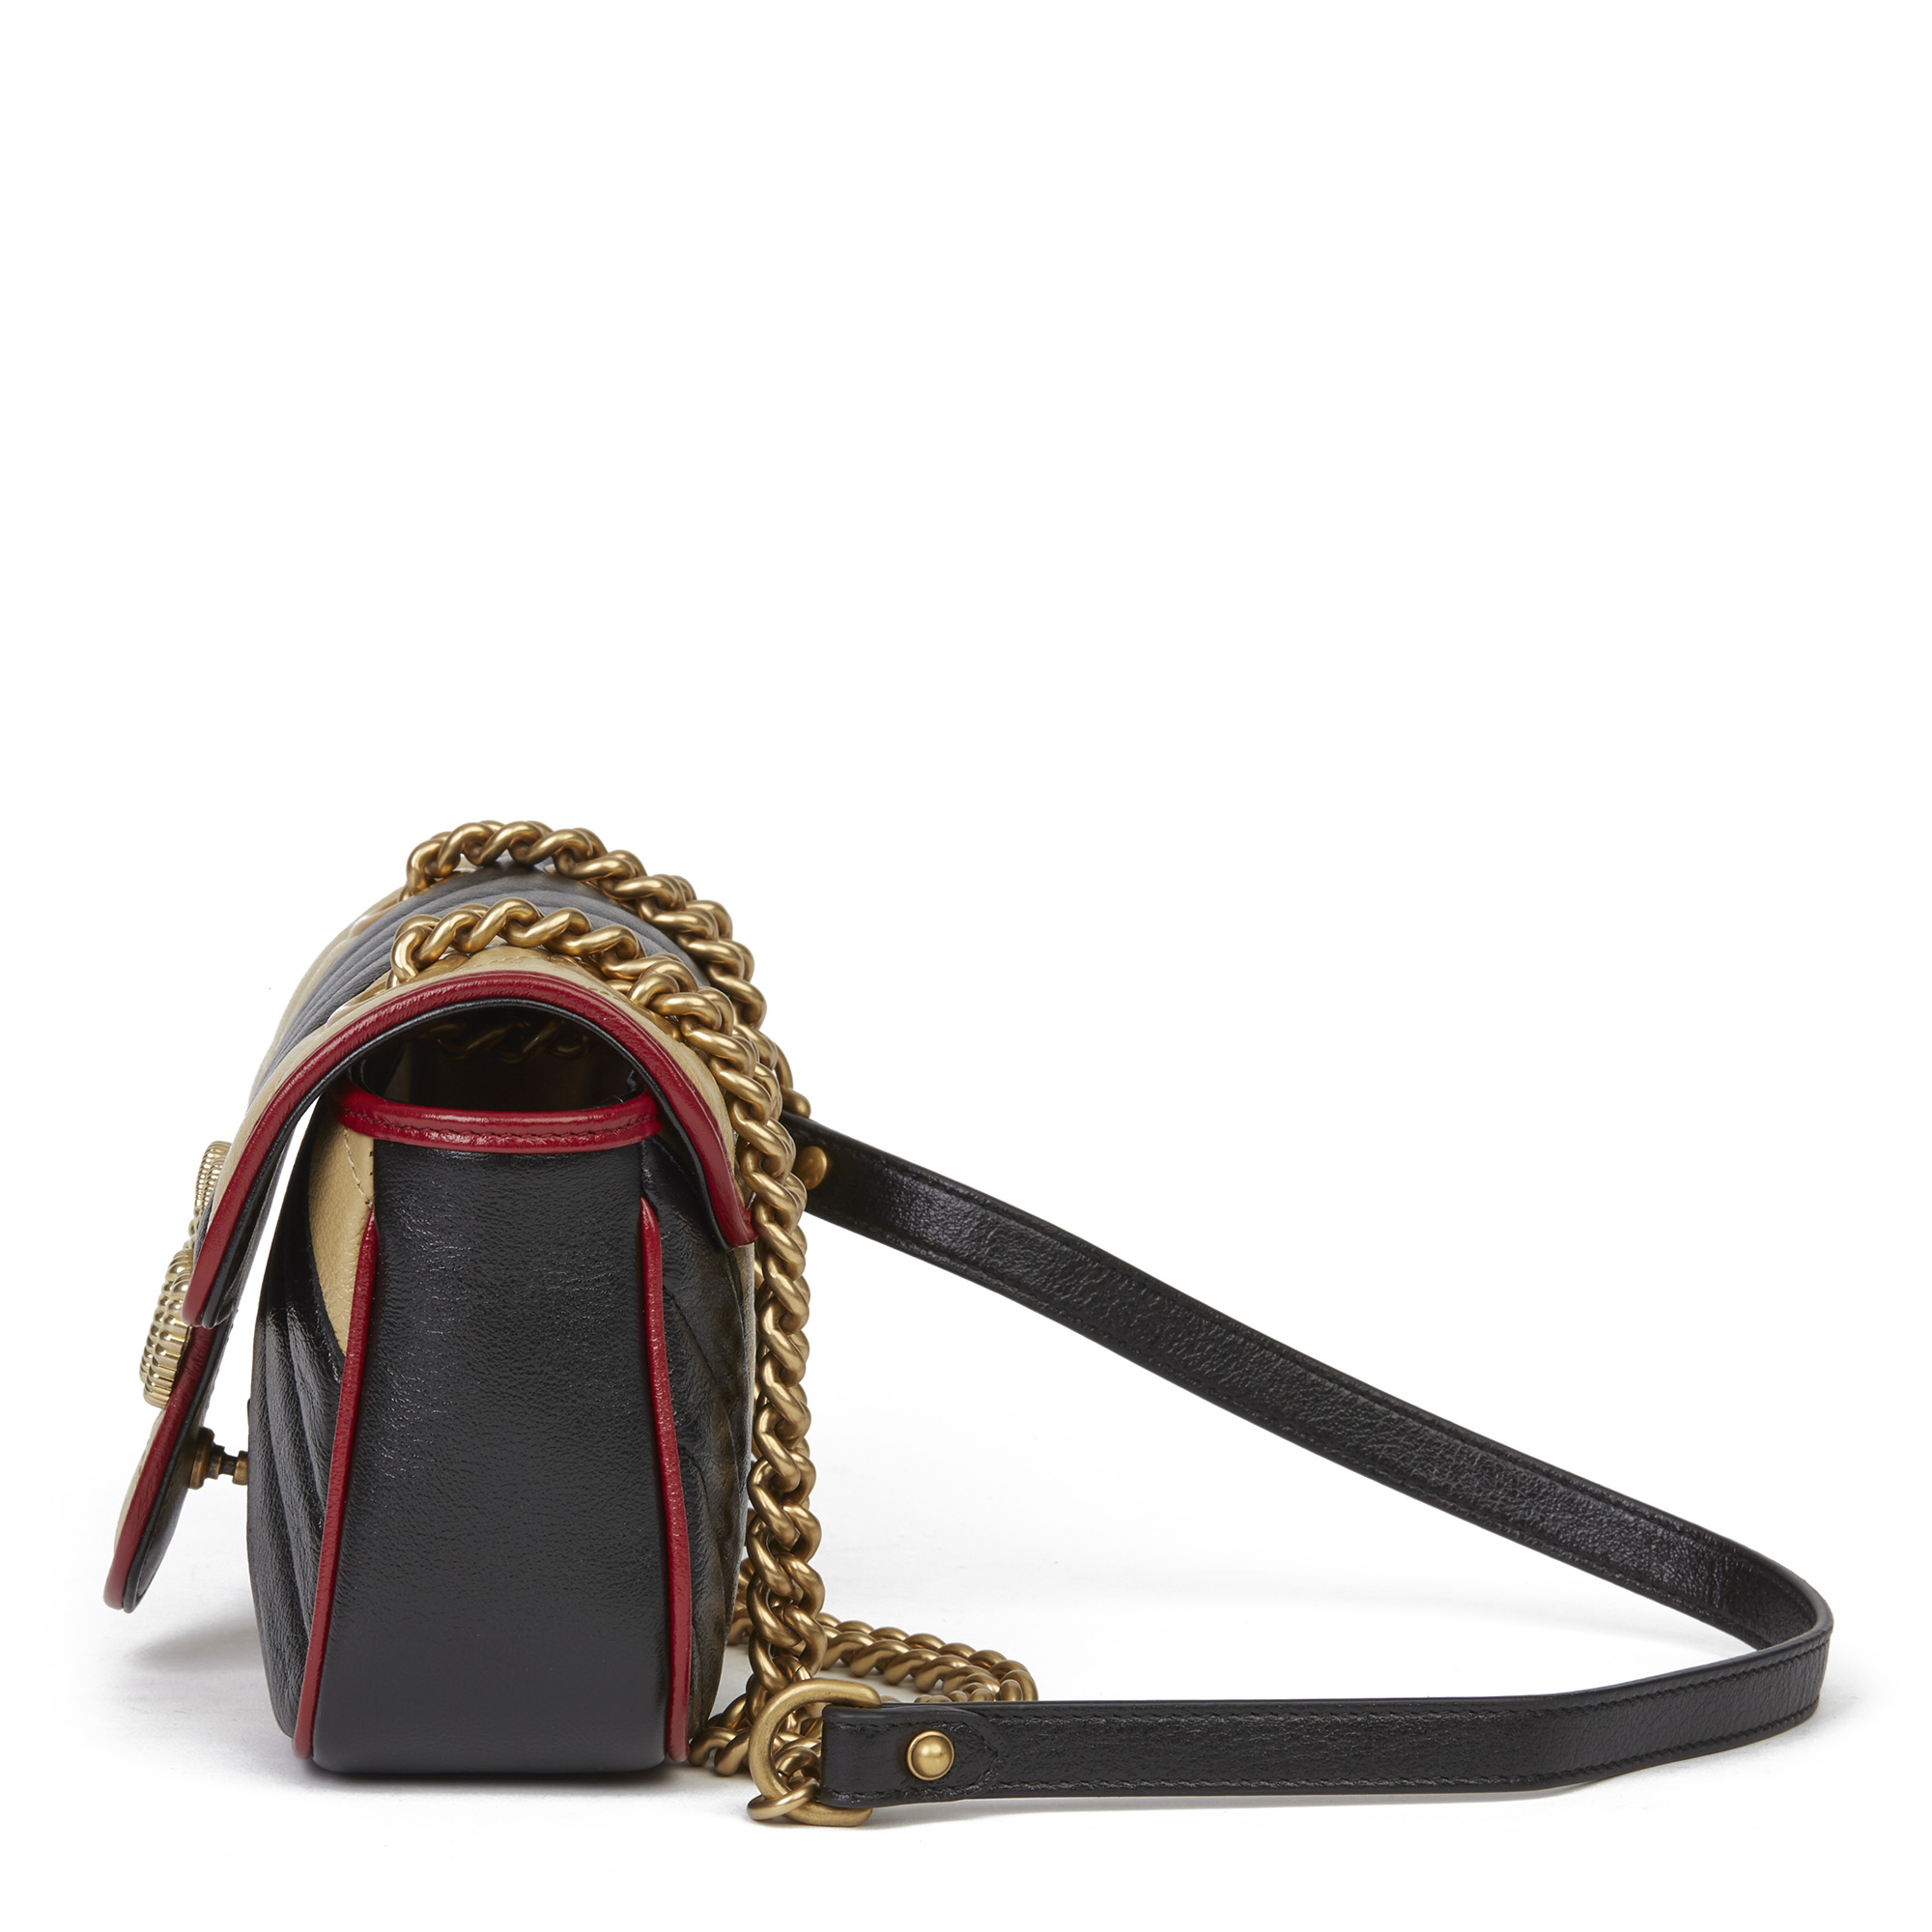 Gucci Black, Cream & Red Diagonal Quilted Aged Calfskin Leather Mini Marmont - Image 11 of 12